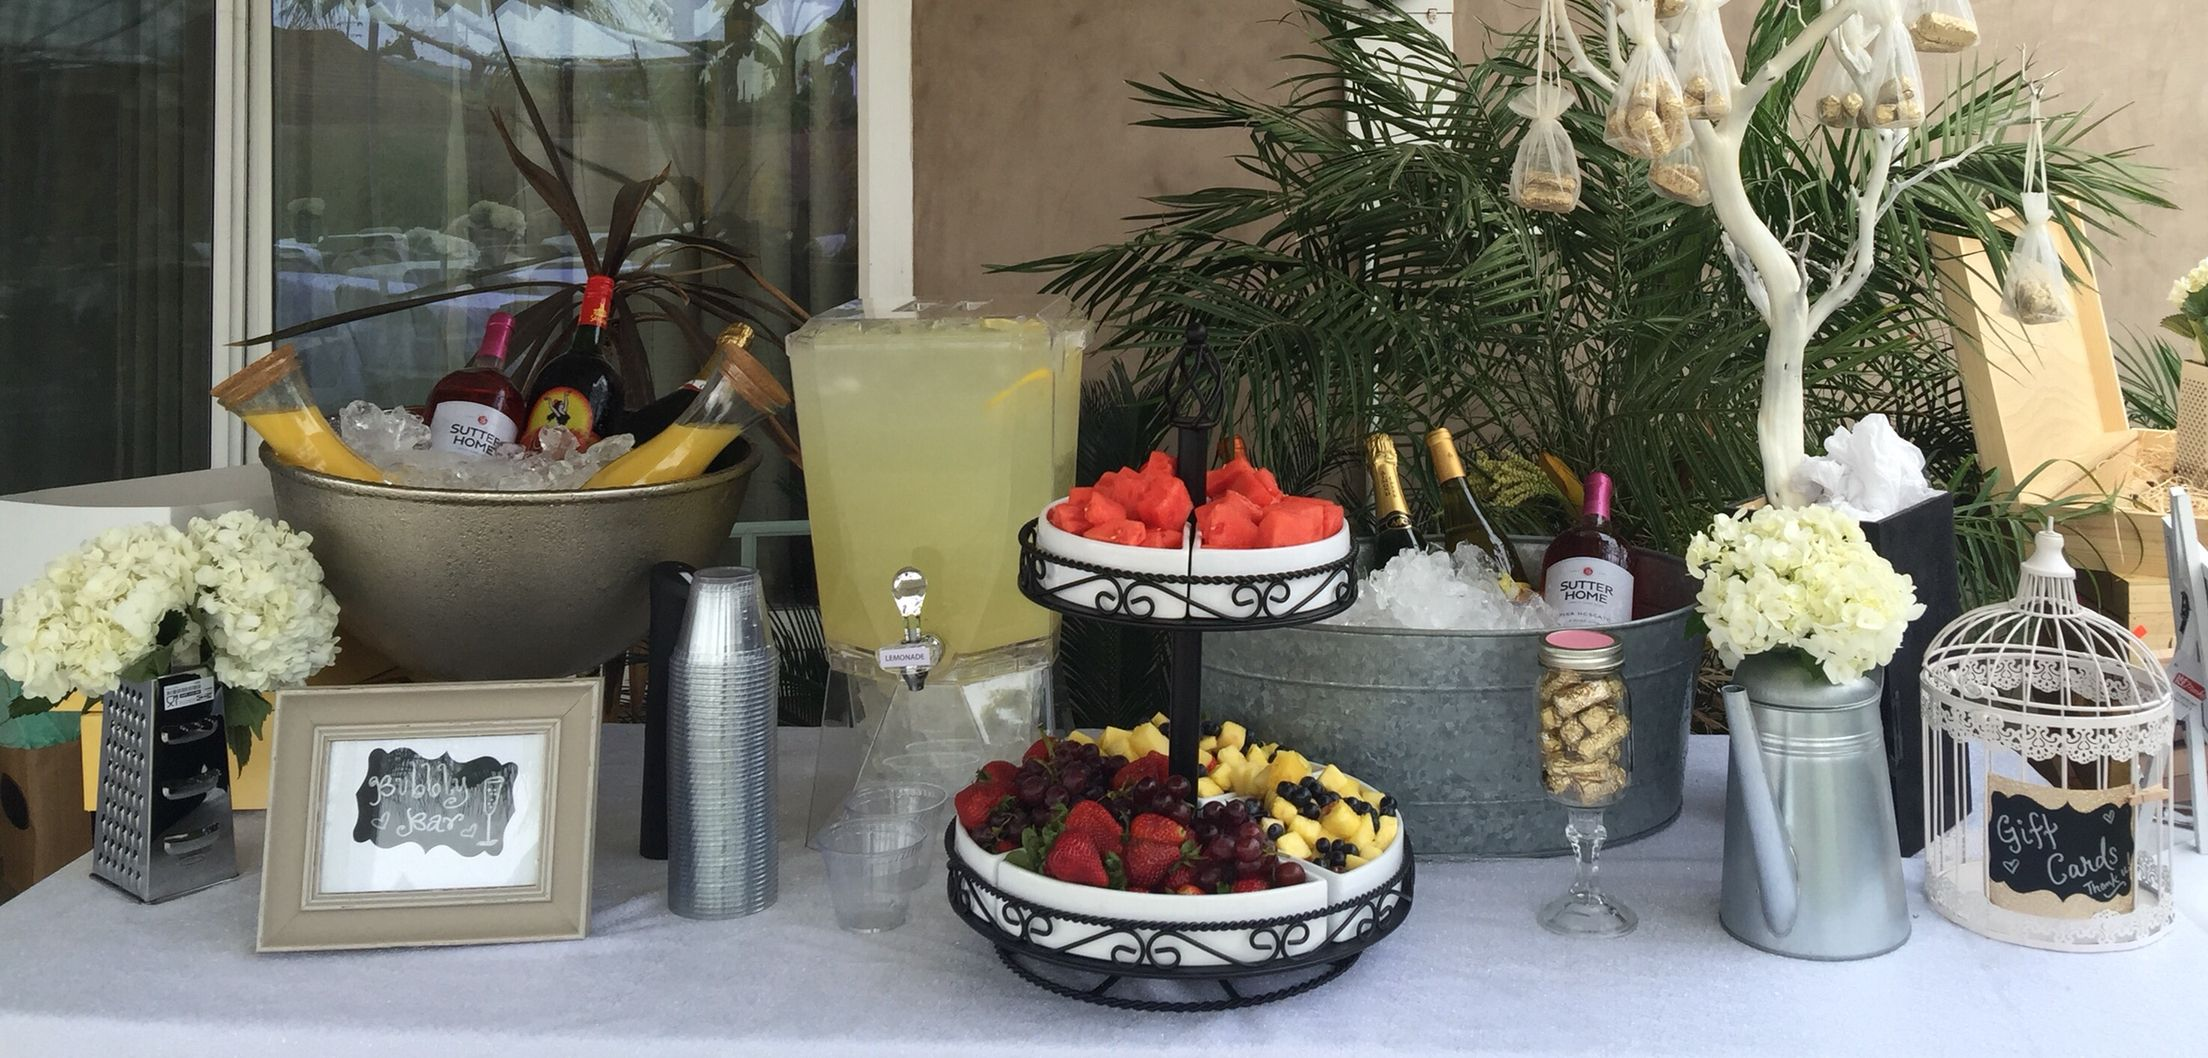 Party Ideas Mimosa Bar Or Bubbly Bar For Hosting At